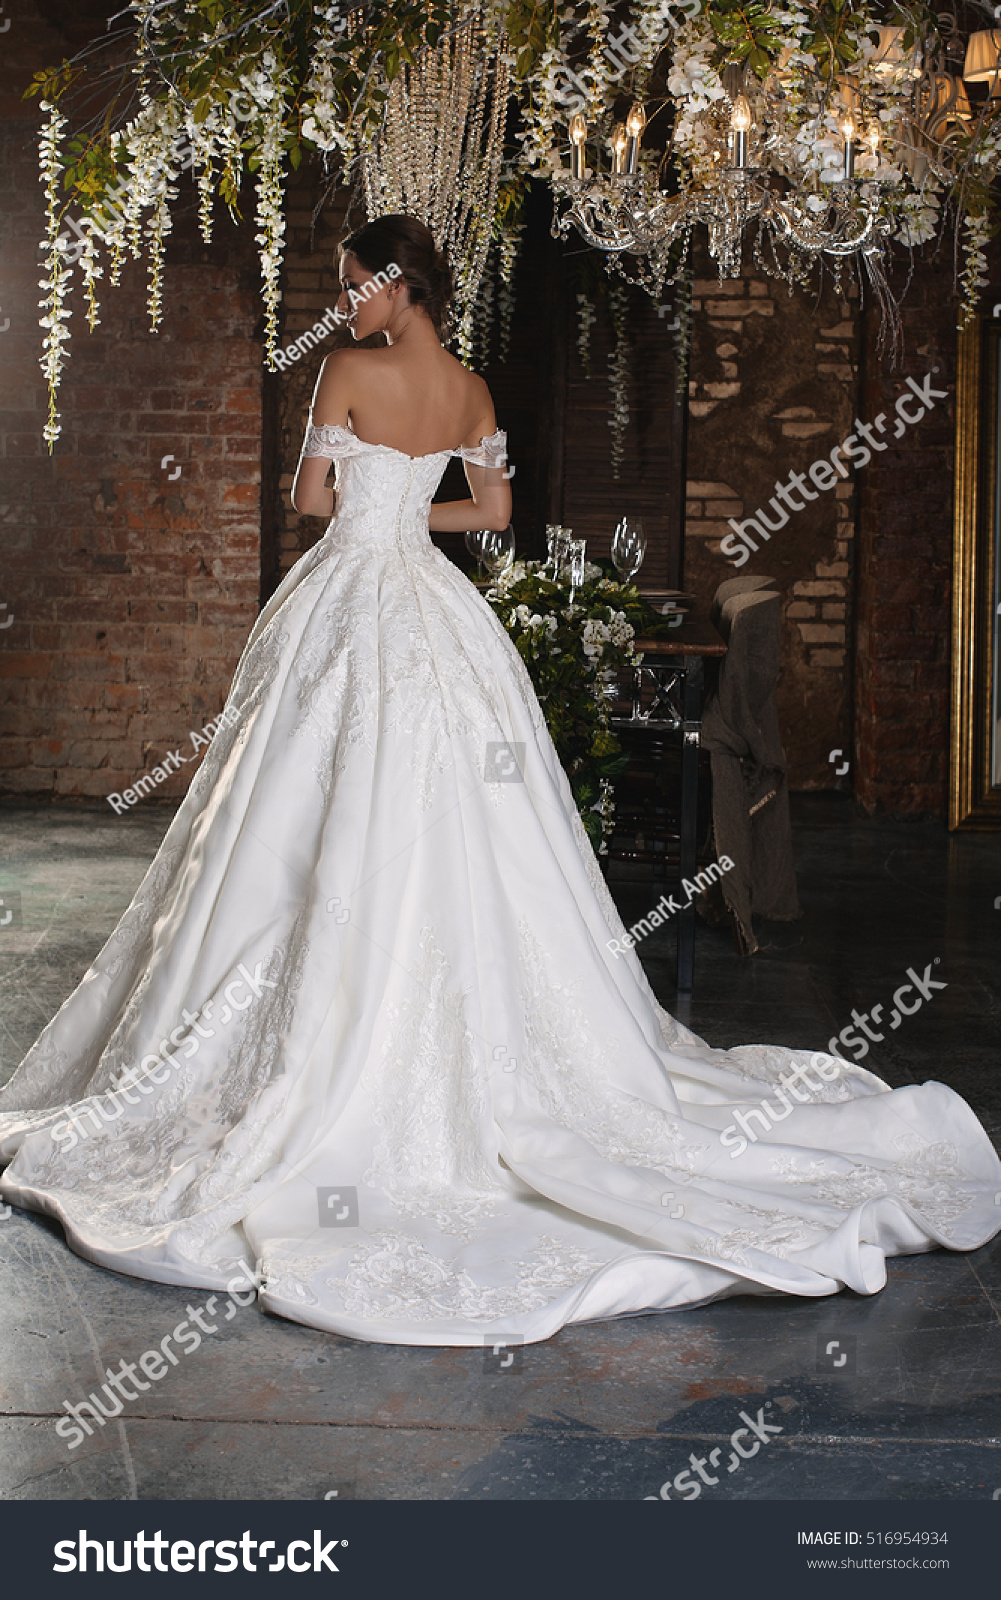 Luxury Bride Wedding Dress Christmas Charming Stock Photo (Royalty ...